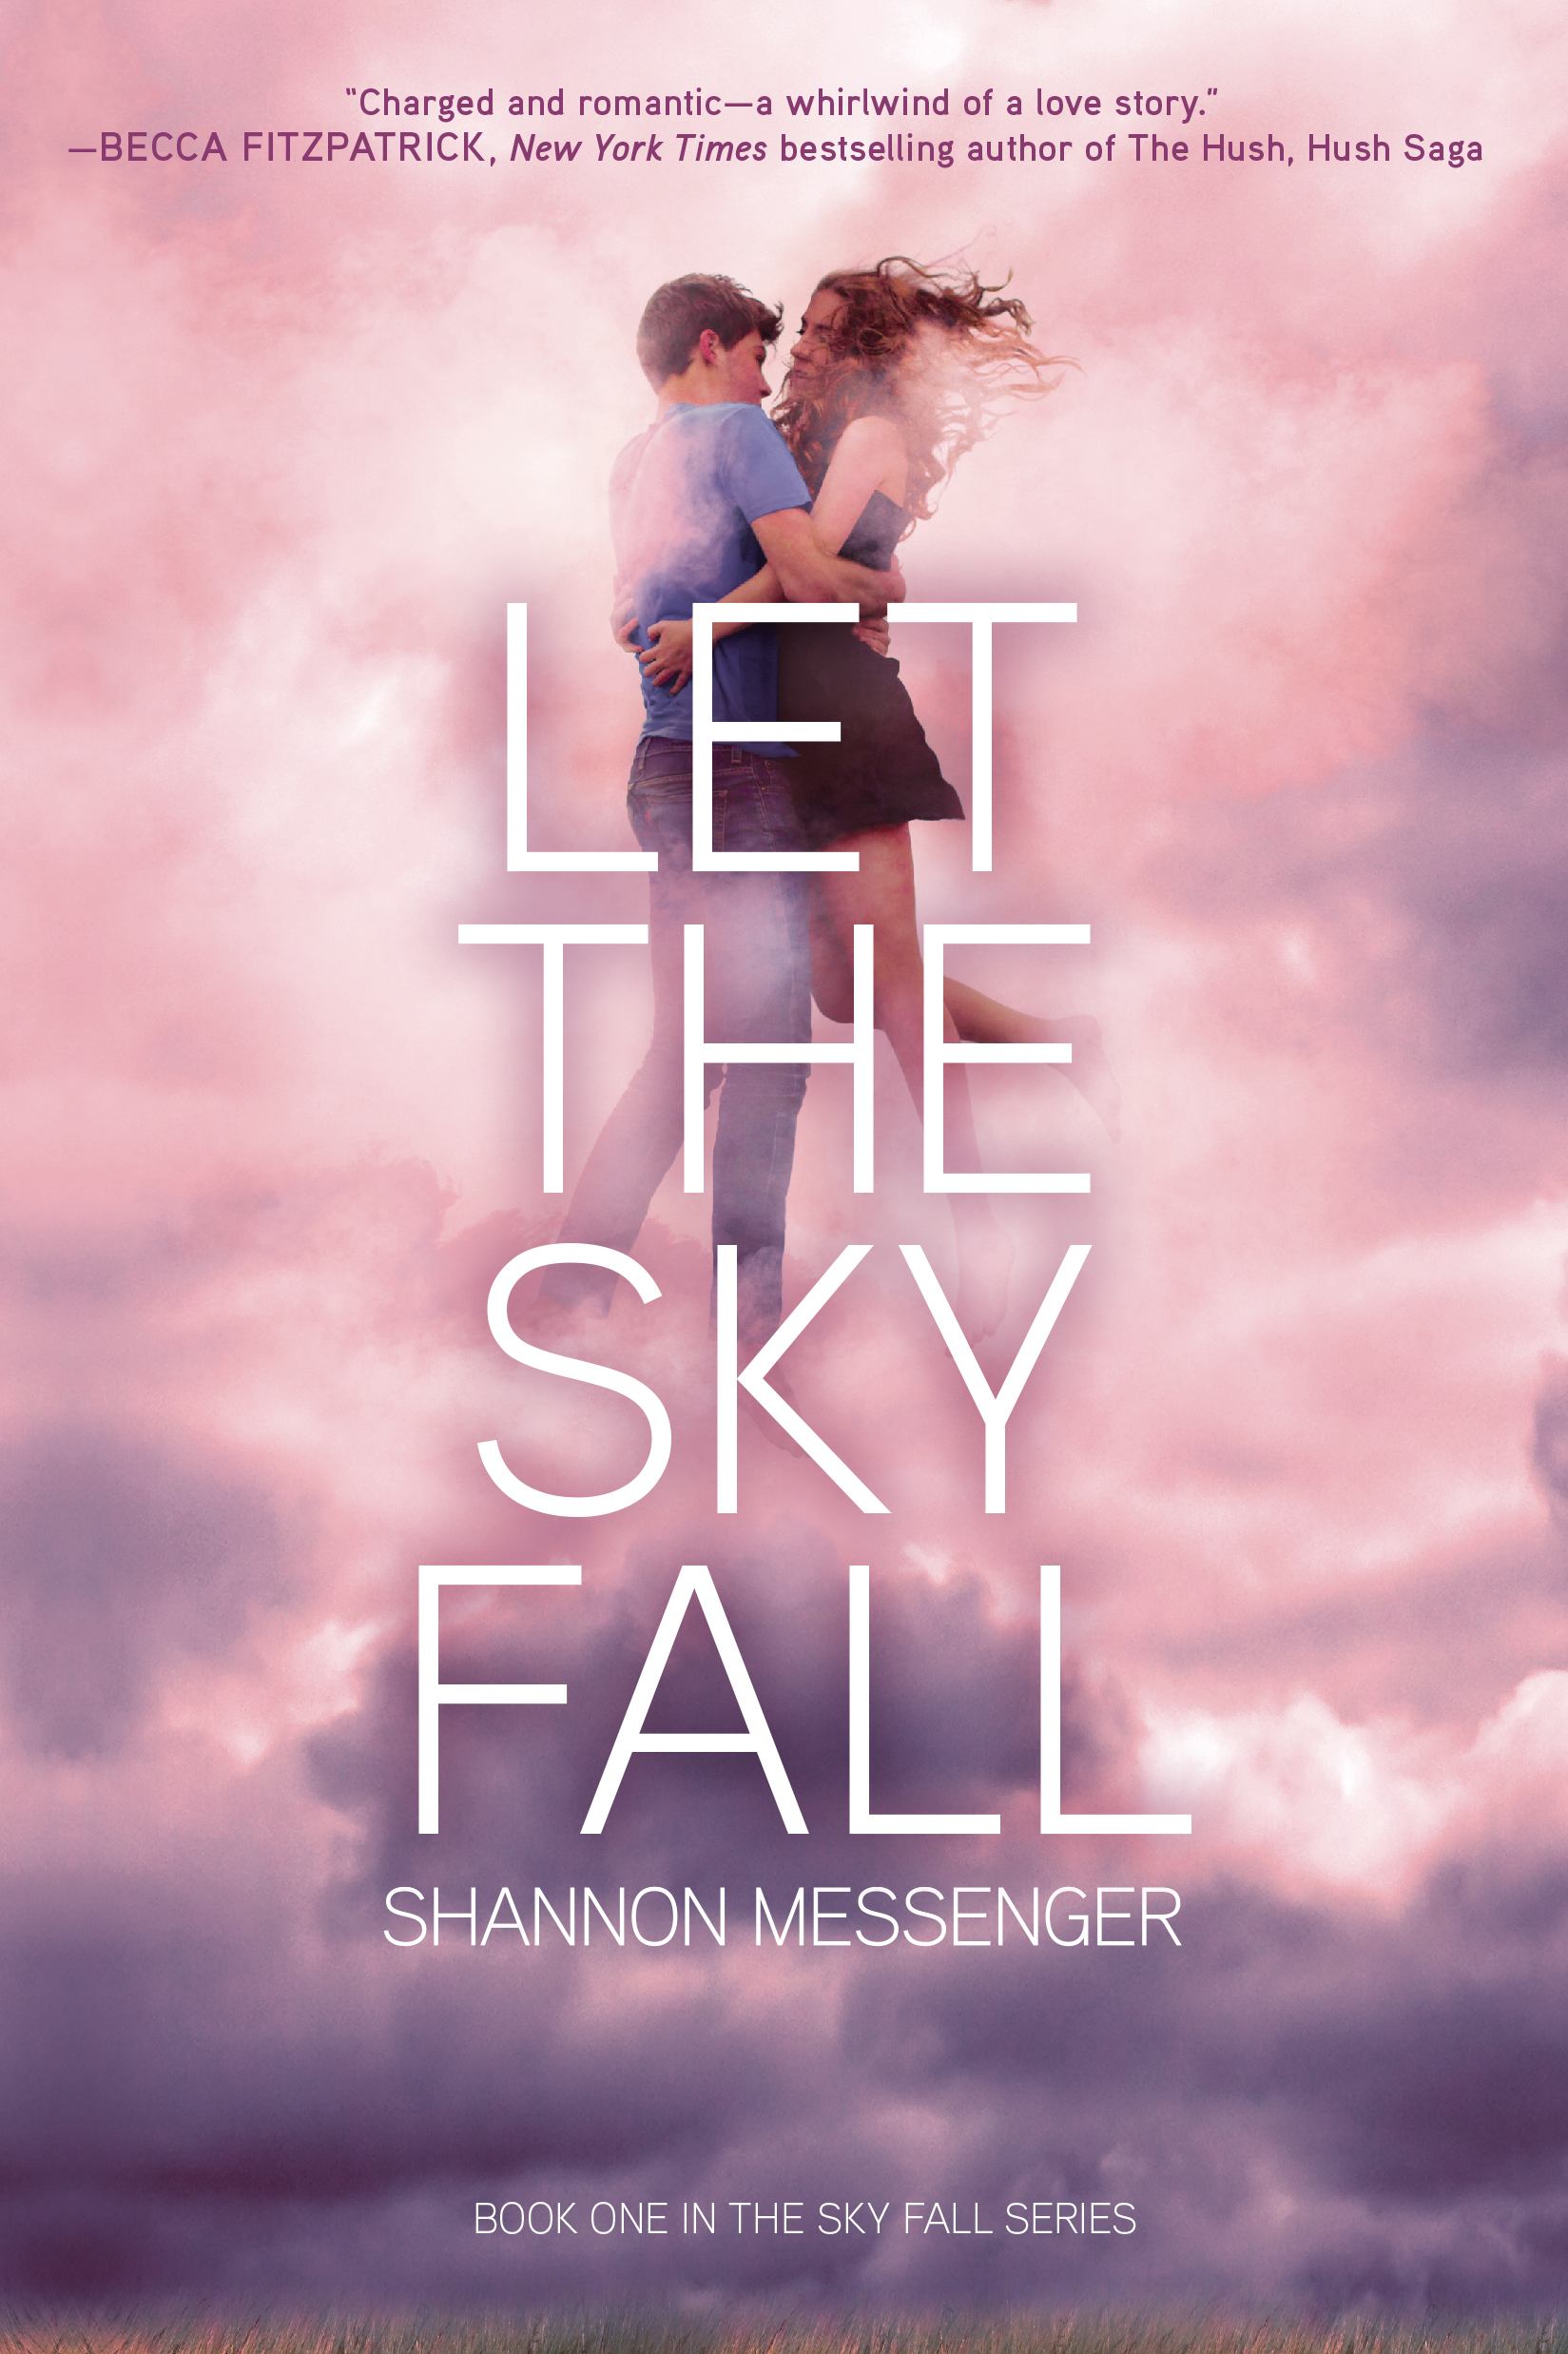 Let-the-sky-fall-9781442450424_hr